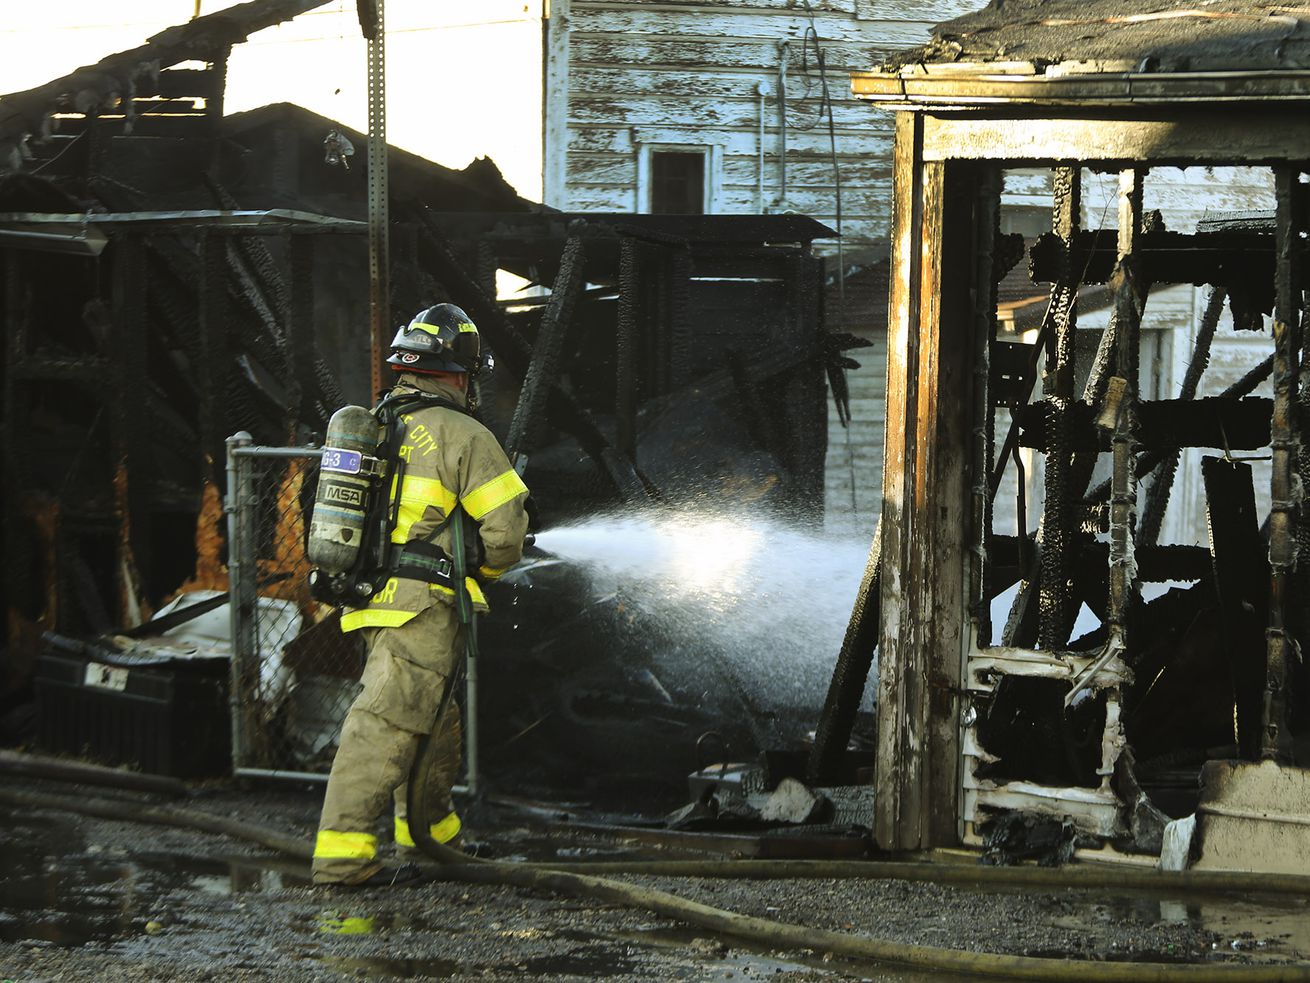 Quick-working firefighters contain garage fire